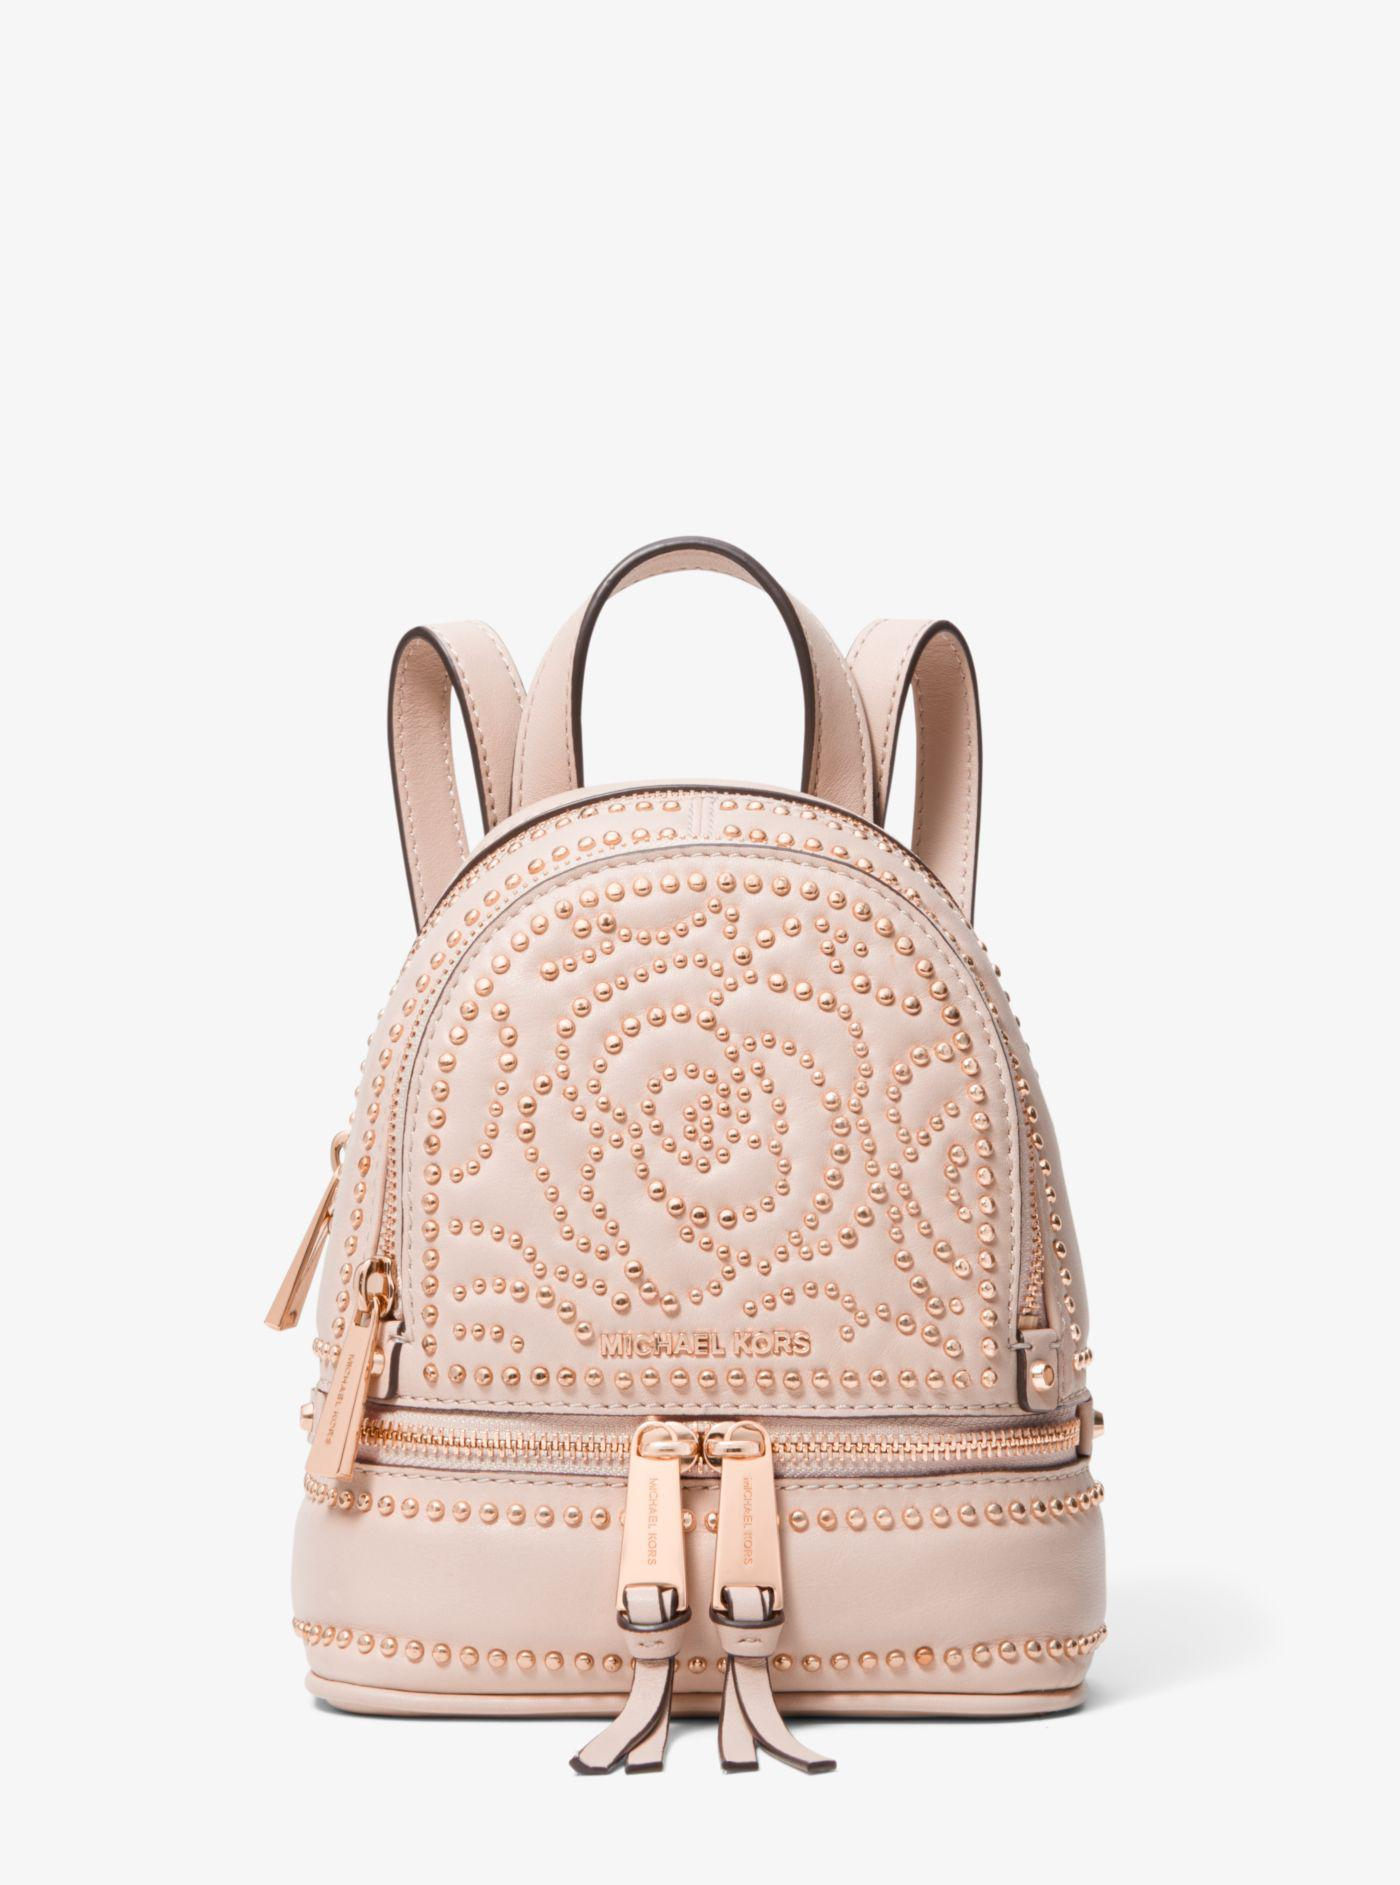 Michael Kors - Pink Michael Rhea Mini Zip Studded Convertible Backpack -  Lyst. View fullscreen 6b89868ba1